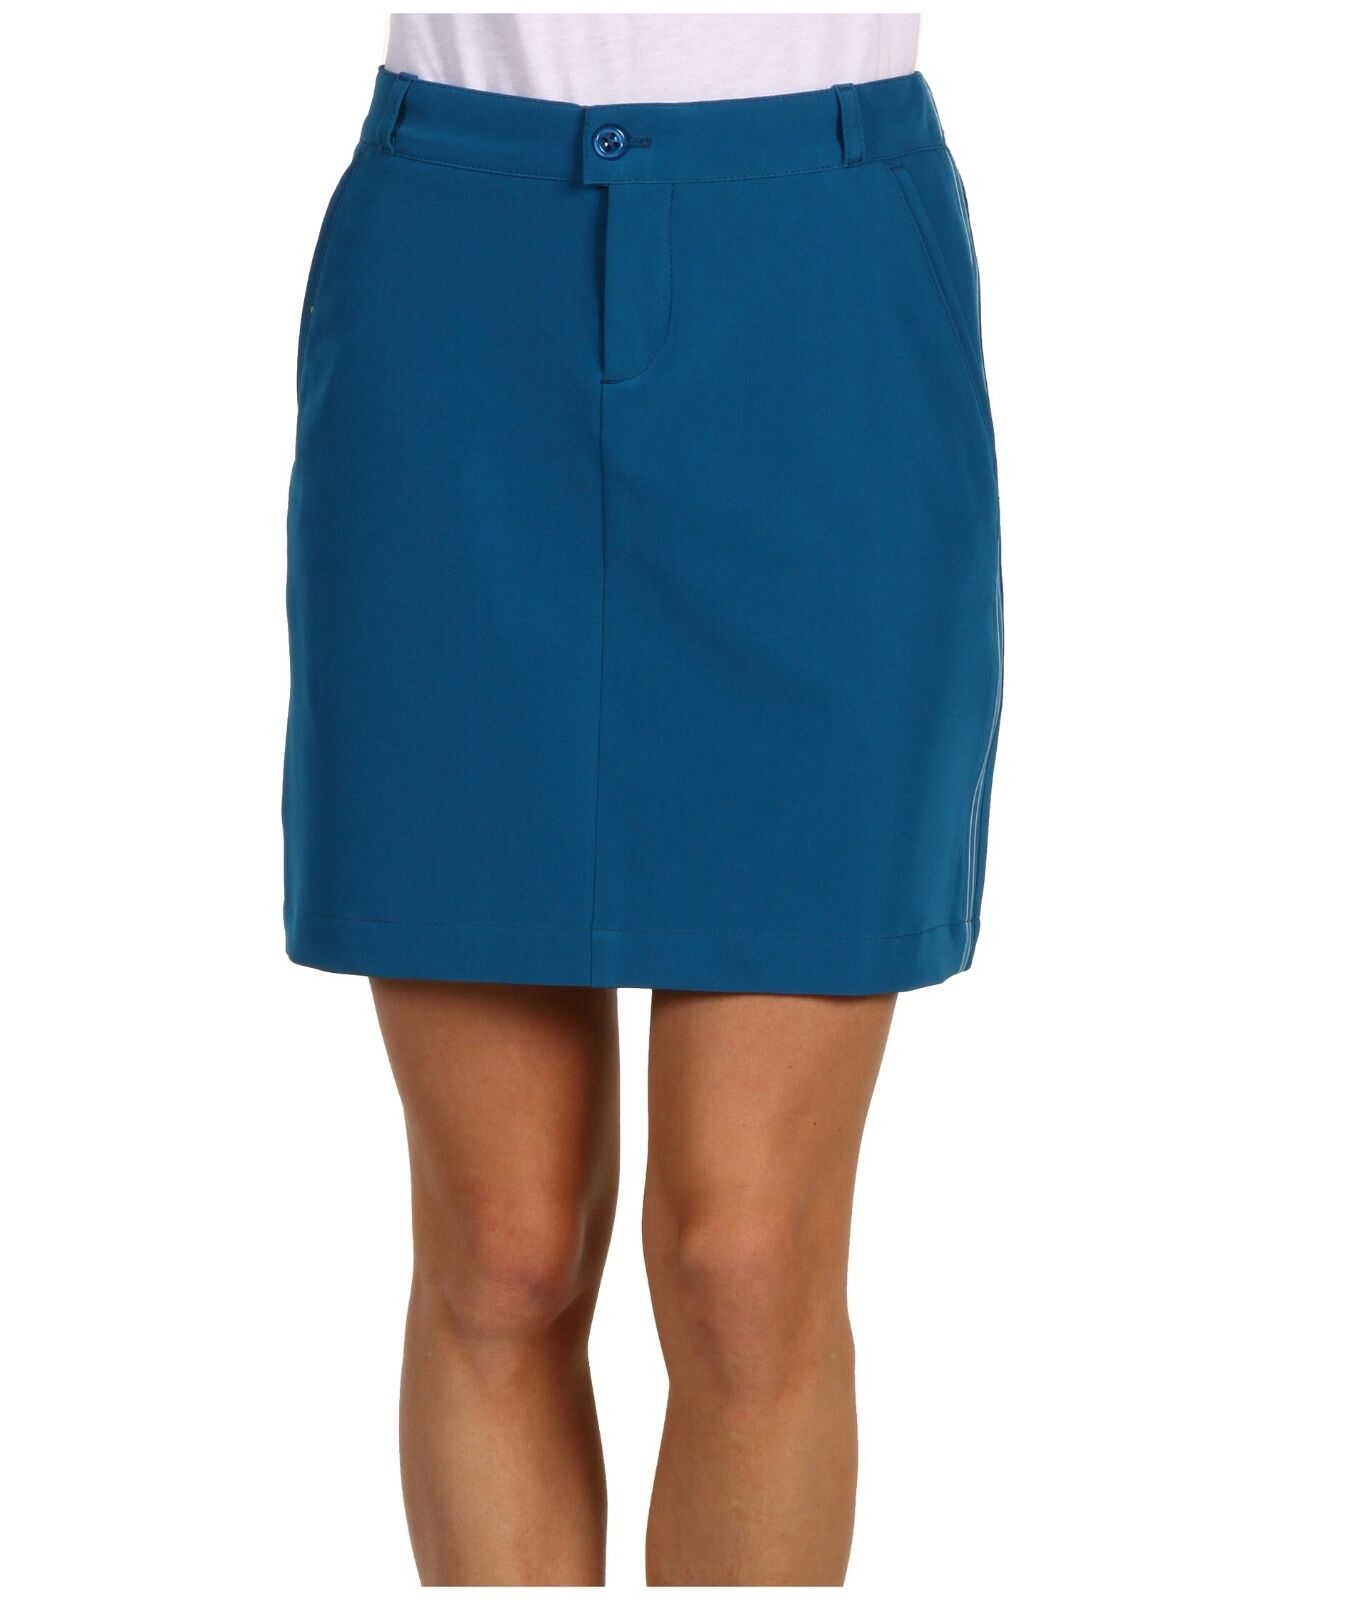 BOSS Hugo Boss Women's Size 6 Bright bluee pinknna Skort Skirt